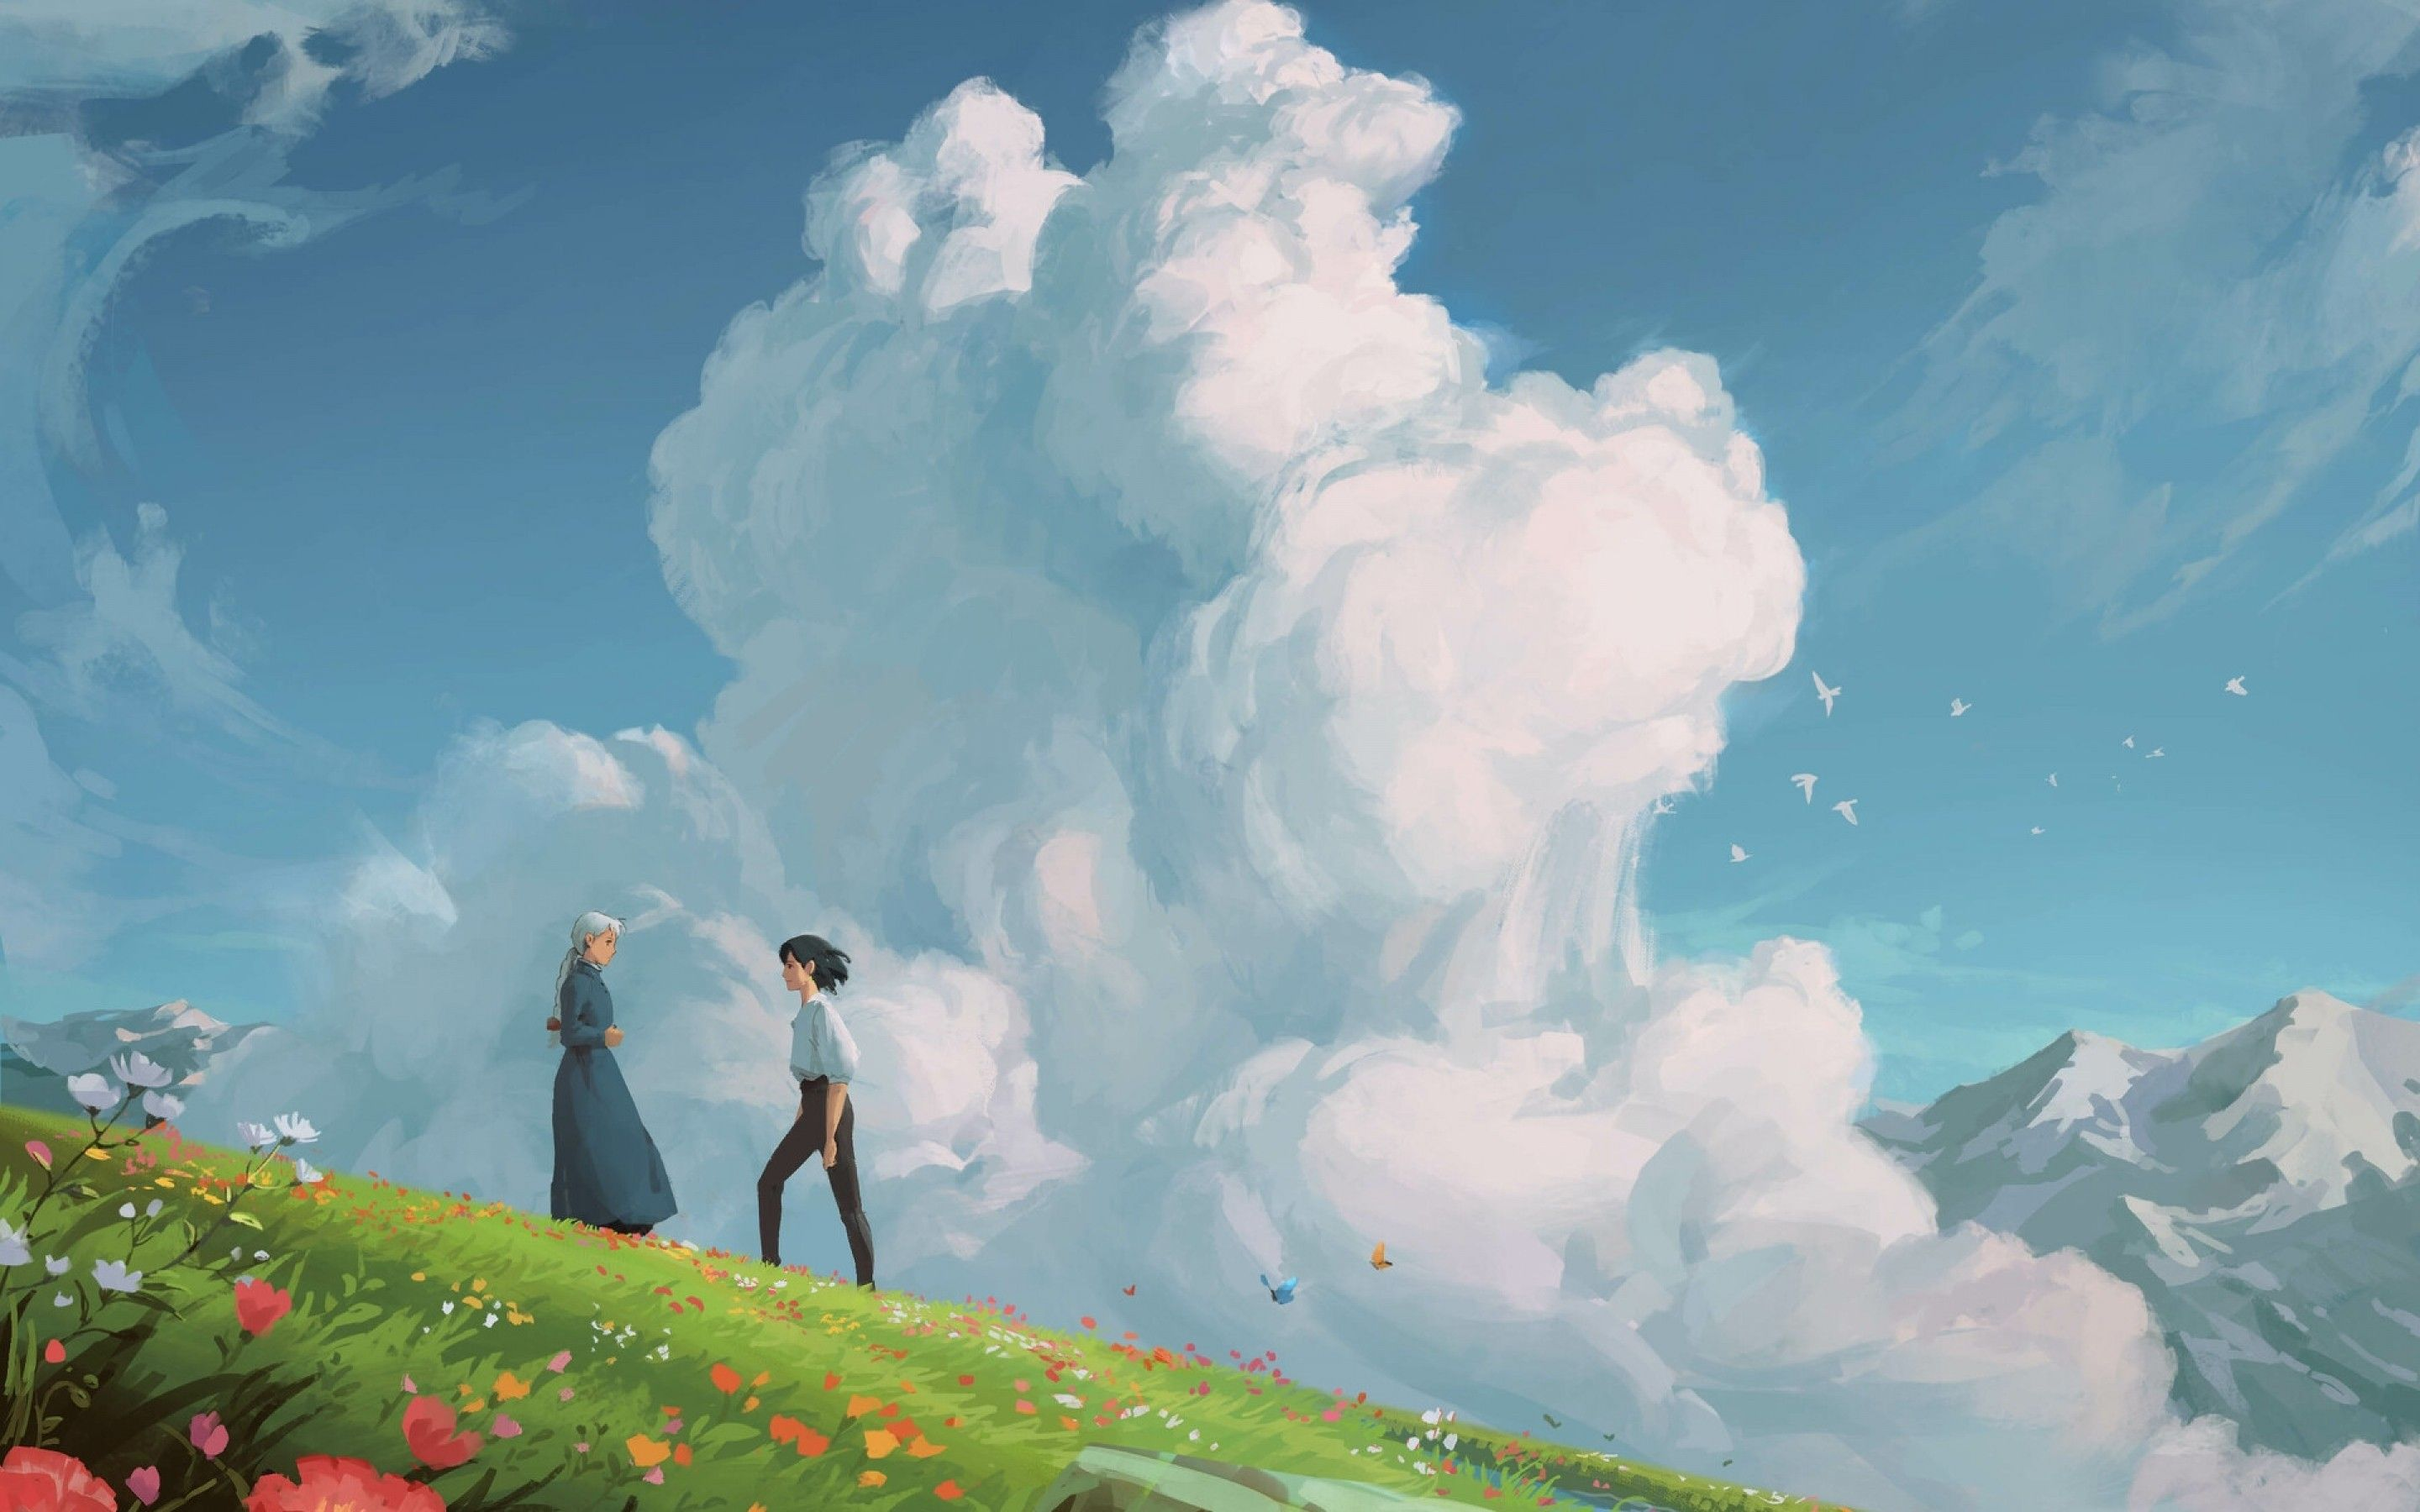 Anime Howls Moving Castle Wallpapers - Top Free Anime ...